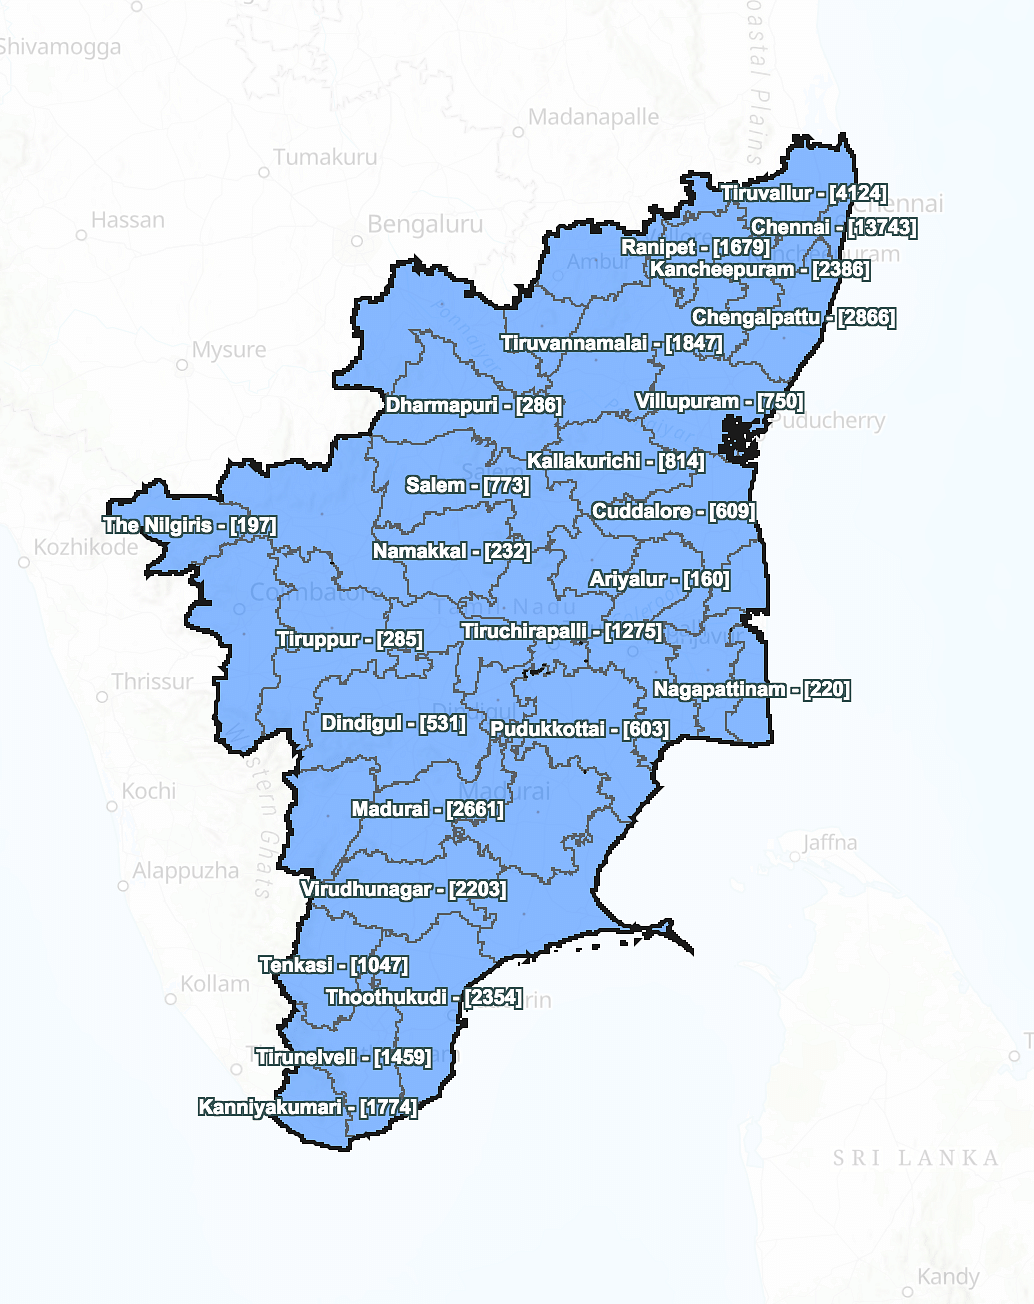 Total active cases in Tamil Nadu as on 24 July